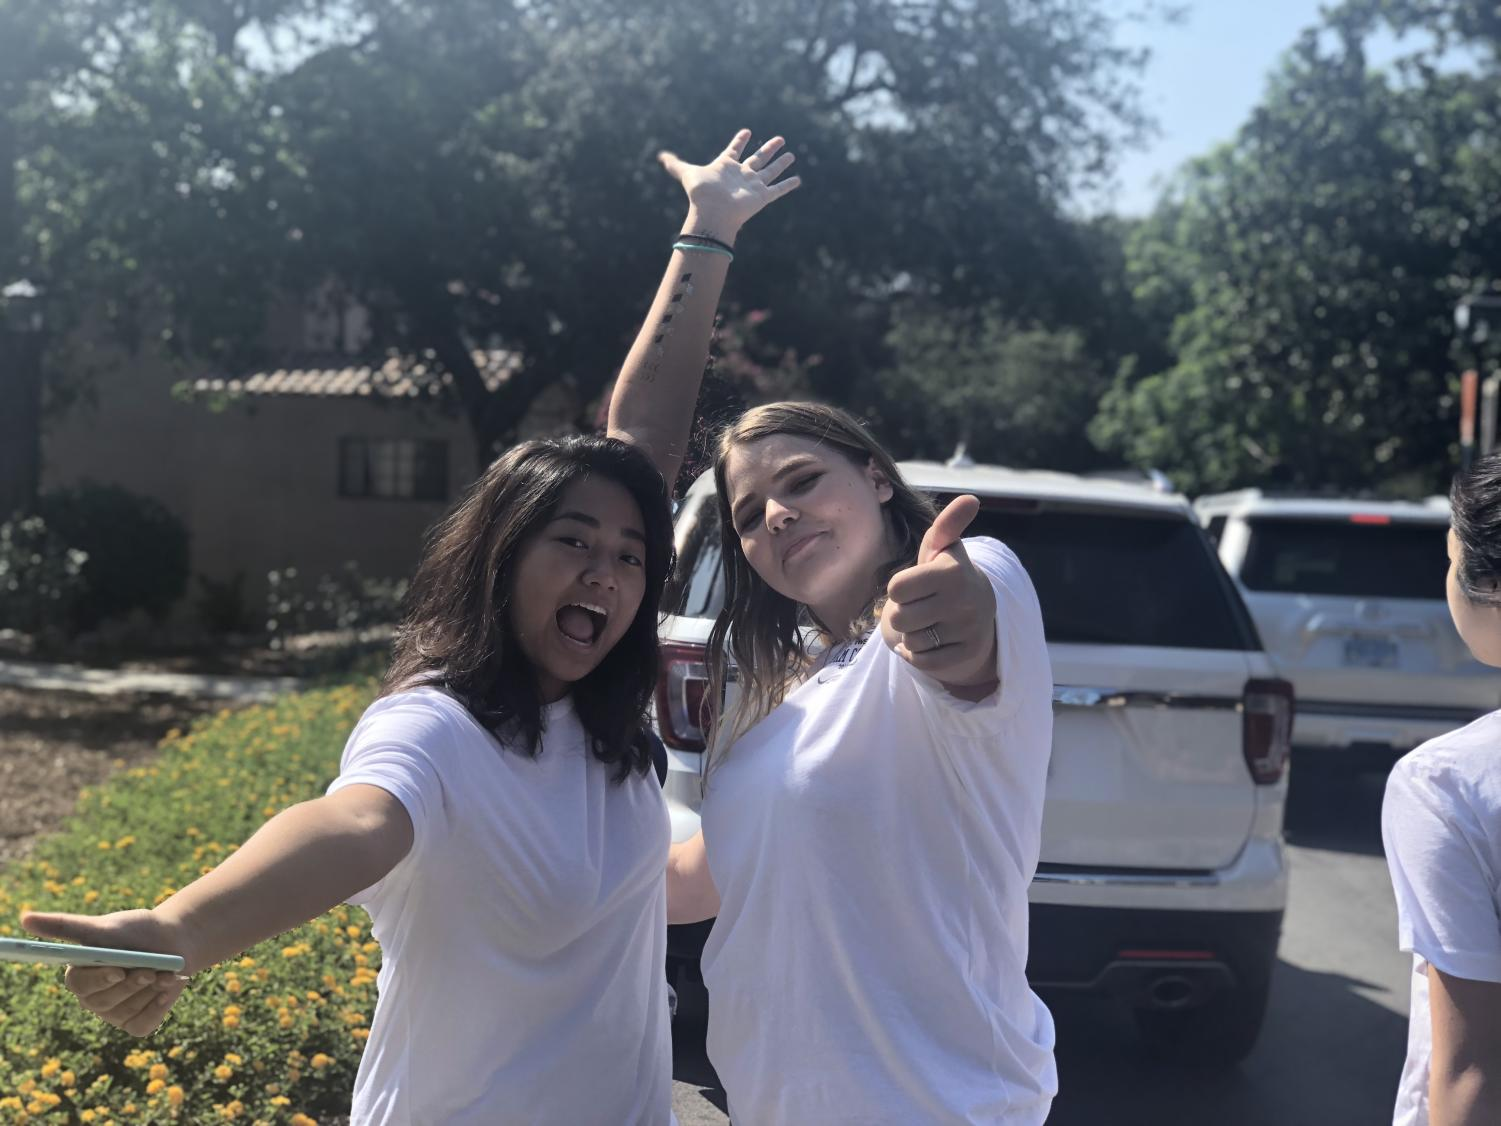 Dorm councillors Doris Yuan ('20) and Maria Shevchuk ('19) are extremely enthusiastic to start the day!